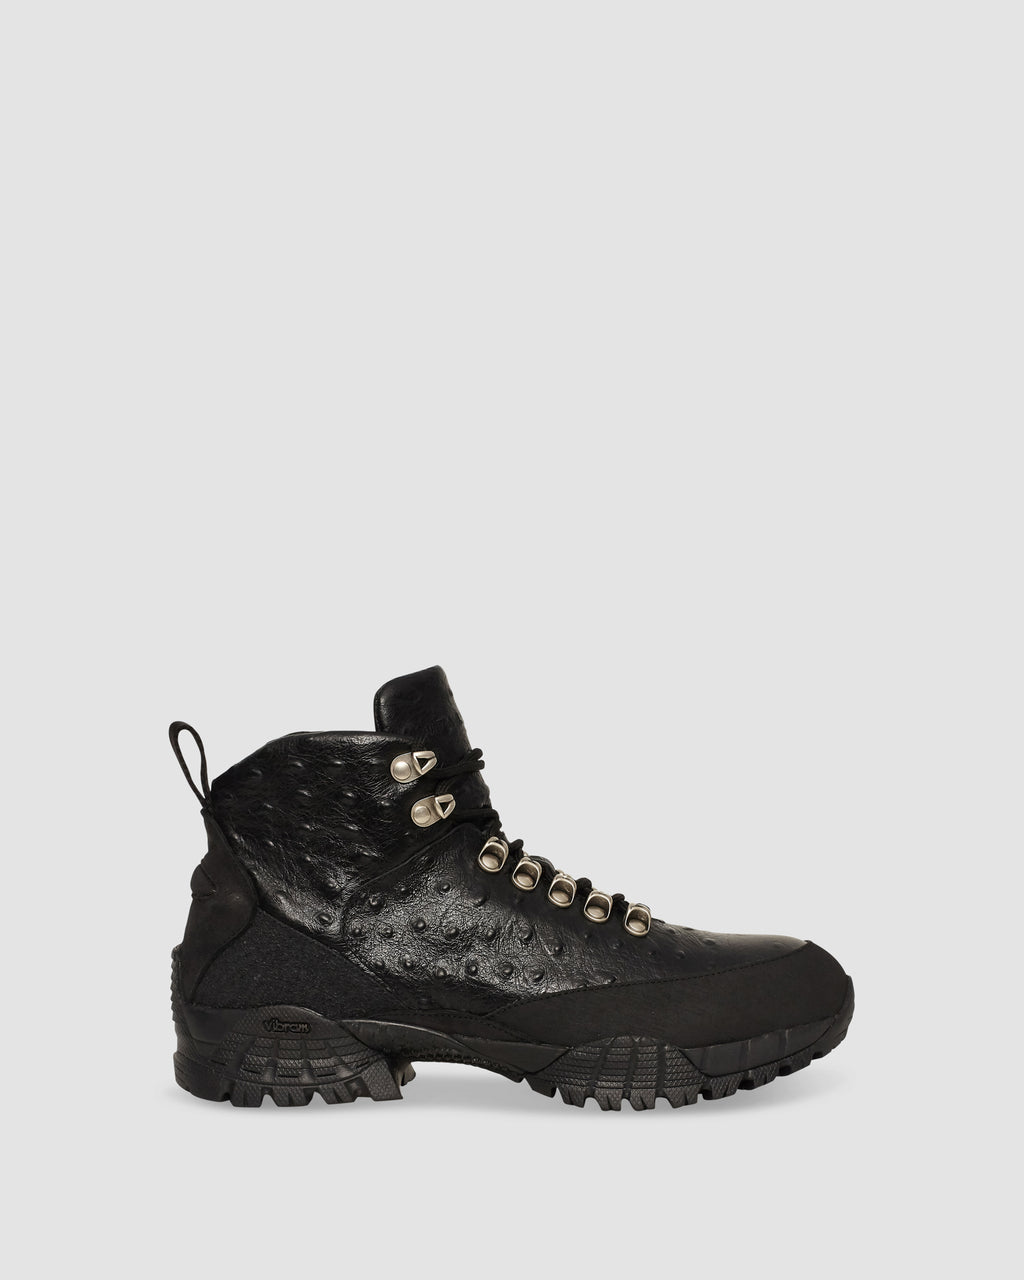 OSTRICH HIGH HIKING BOOT PRE-ORDER